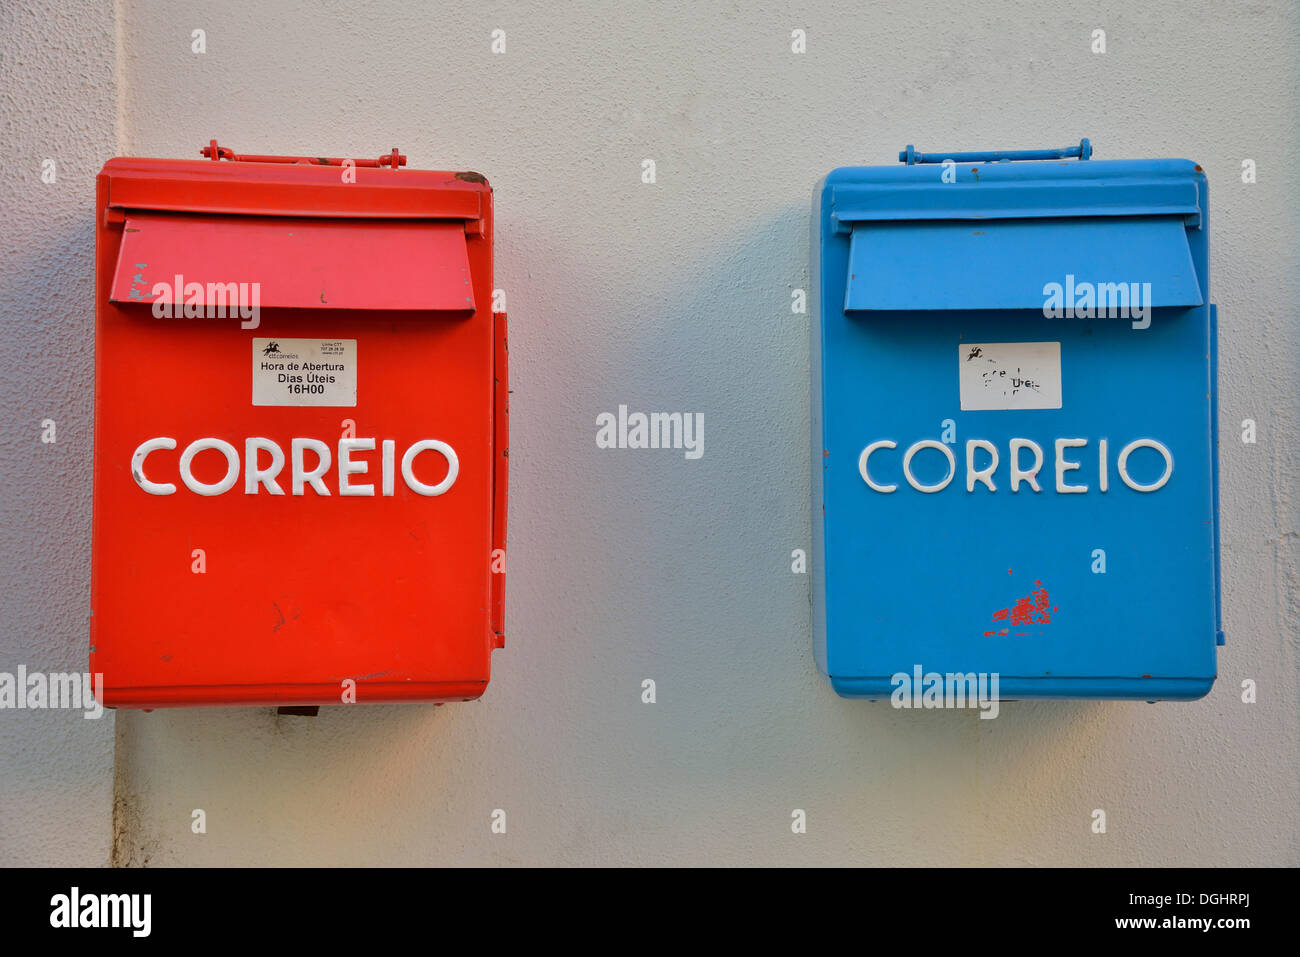 Red and blue mailboxes, Alfama, Lisbon, Lisbon District, Portugal - Stock Image